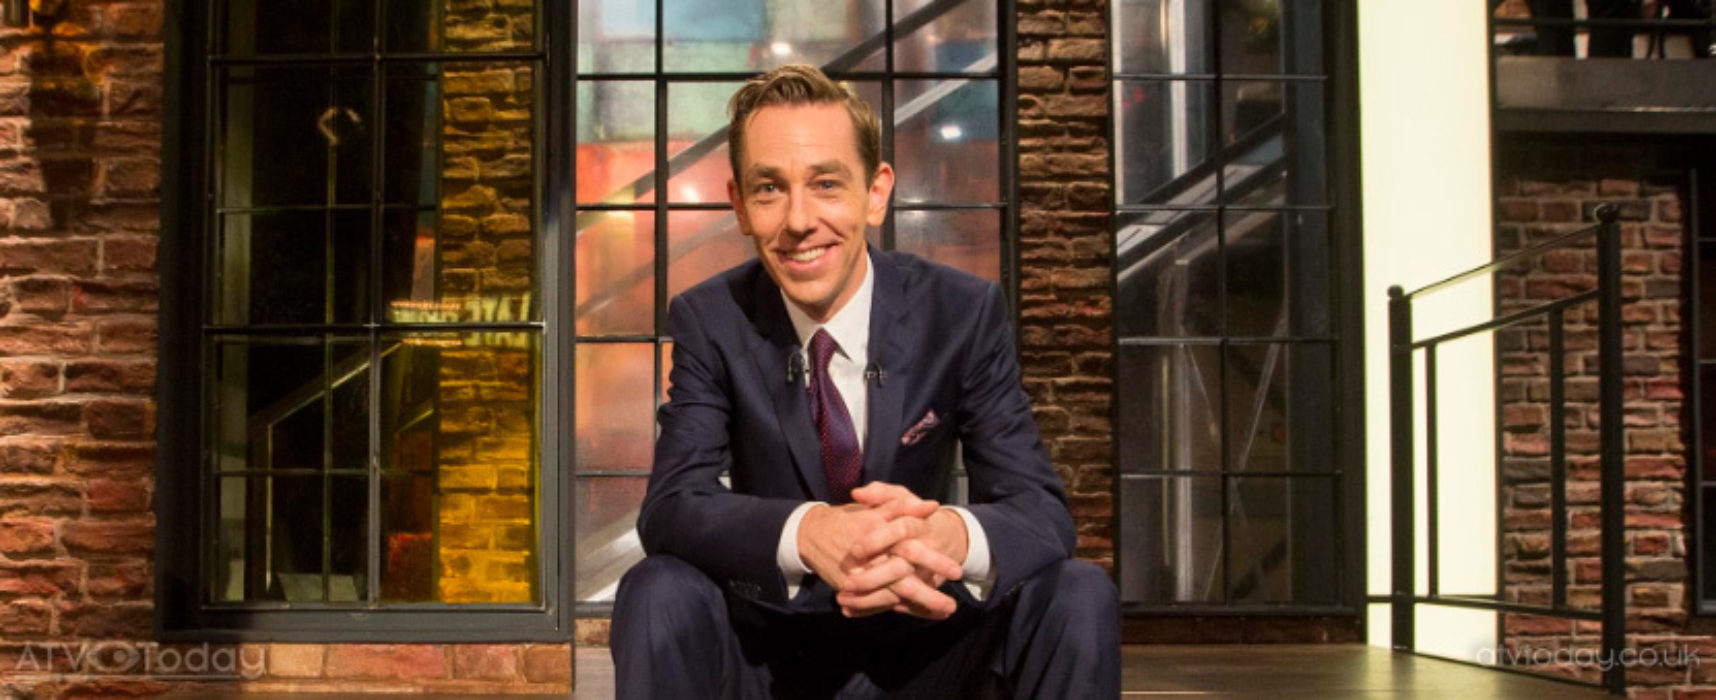 RTÉ's The Late Late Show to broadcast from London